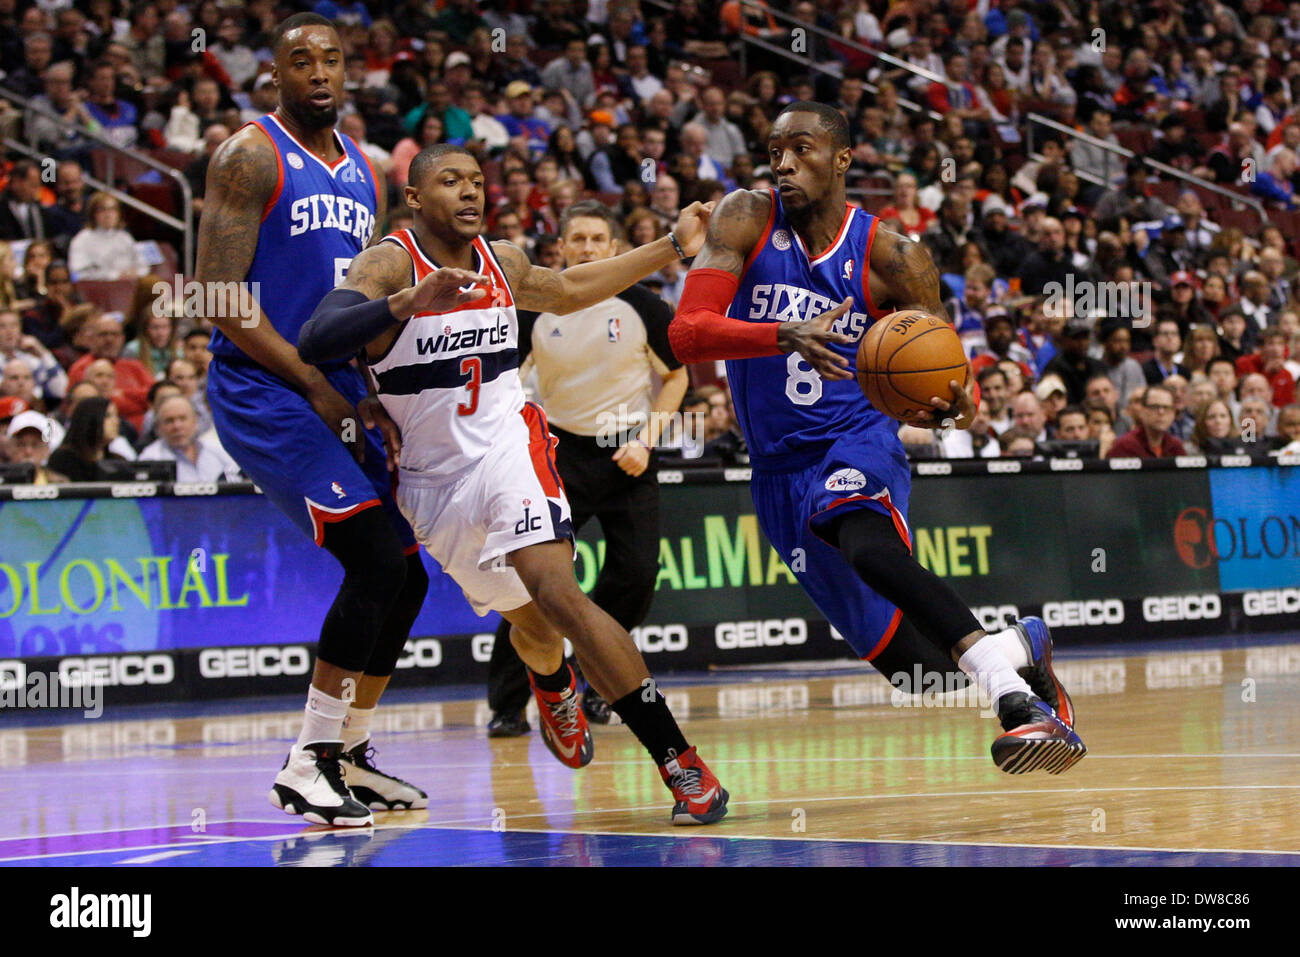 4b9430cbf ... Tony Wroten (8) drives to the basket as power forward Arnett Moultrie  (5) tried to set the screen on Washington Wizards shooting guard Bradley  Beal ...